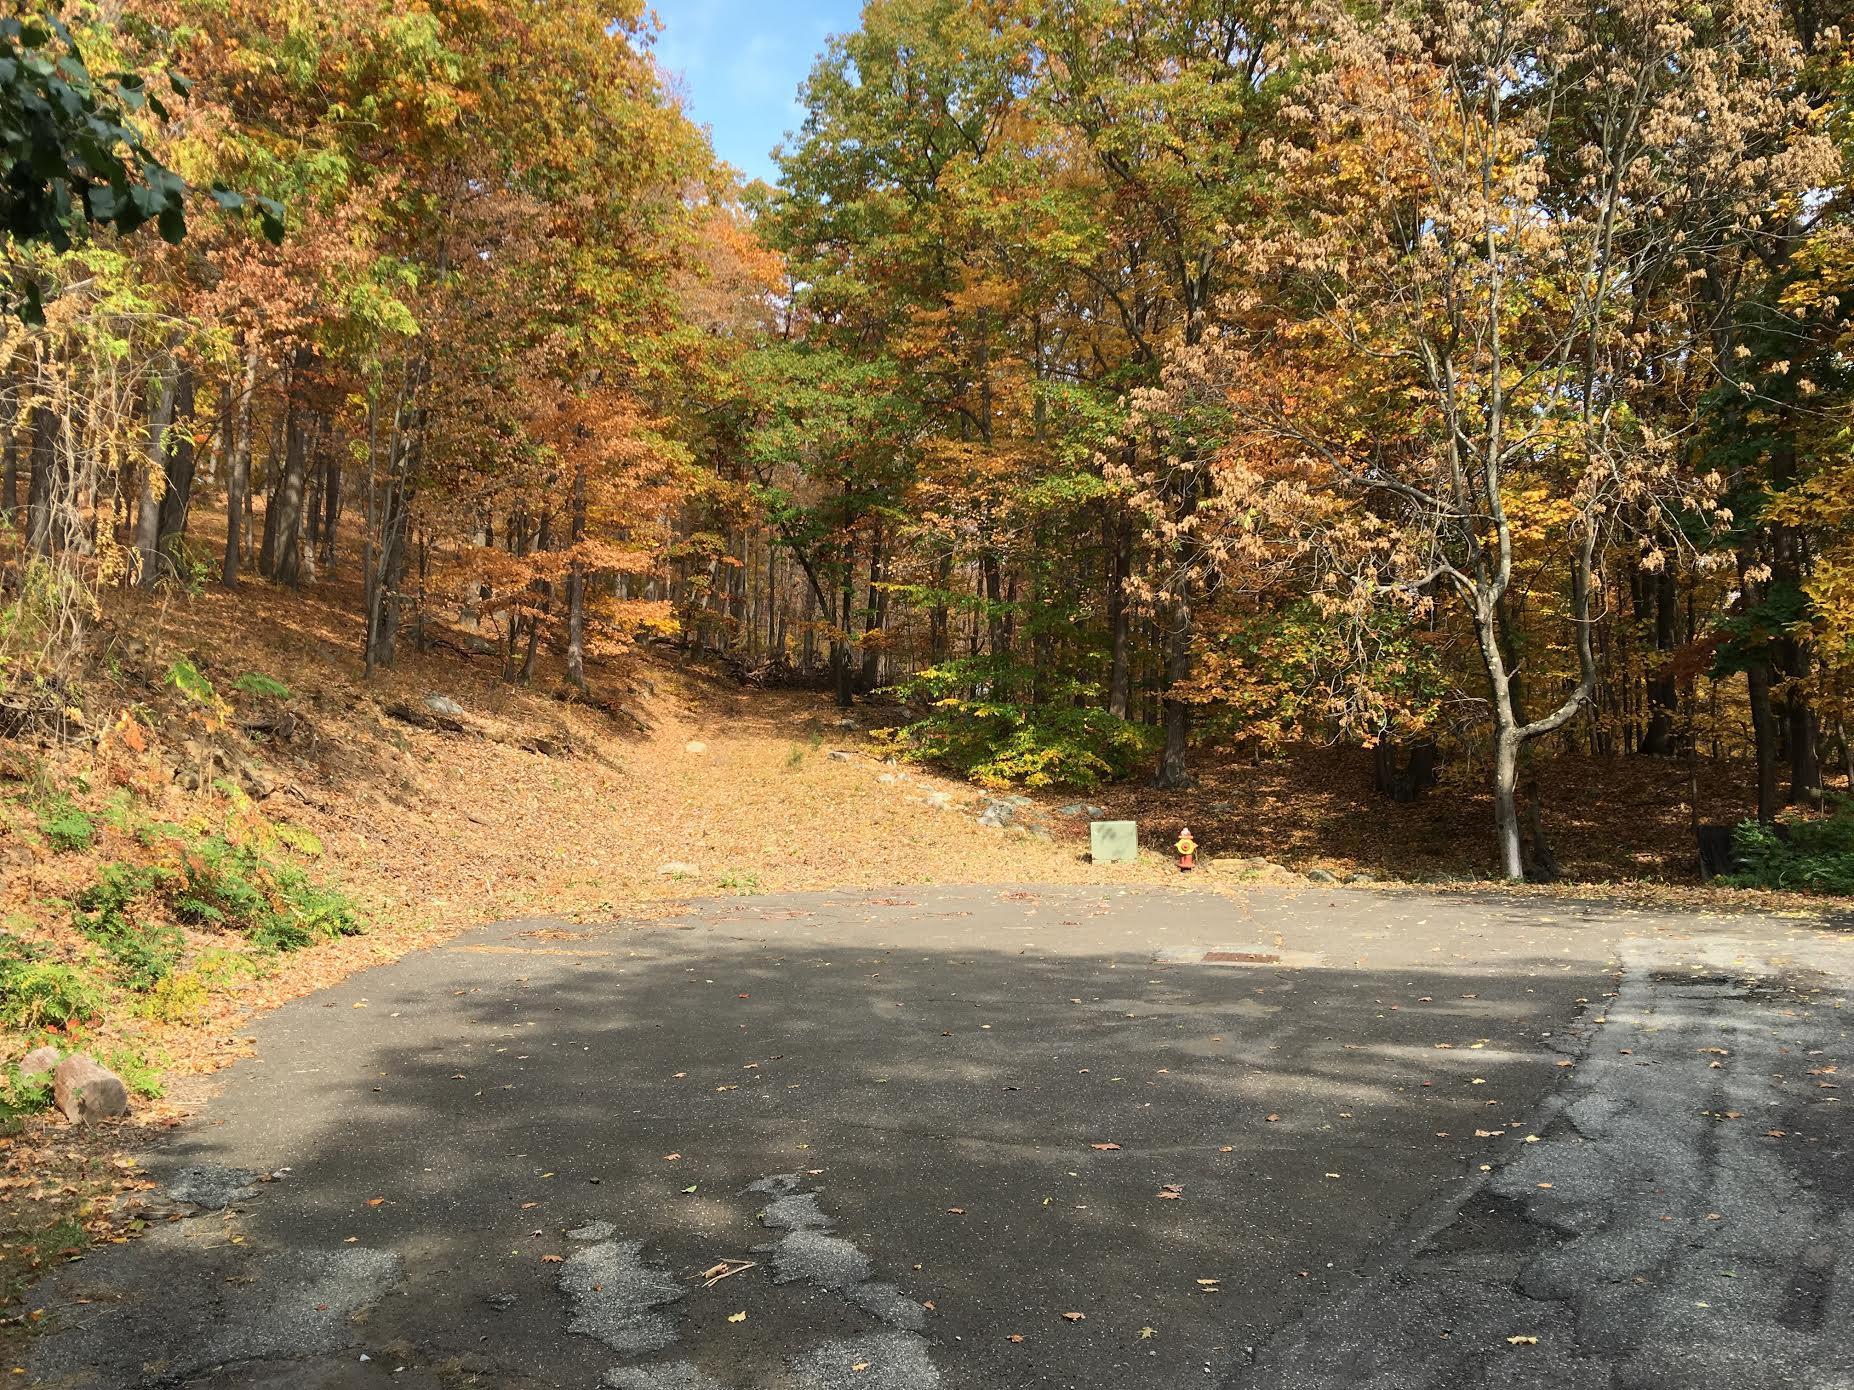 Land for Sale at Beautiful Land in Historic District Lookout Stable Road Tuxedo Park, New York, 10987 United States